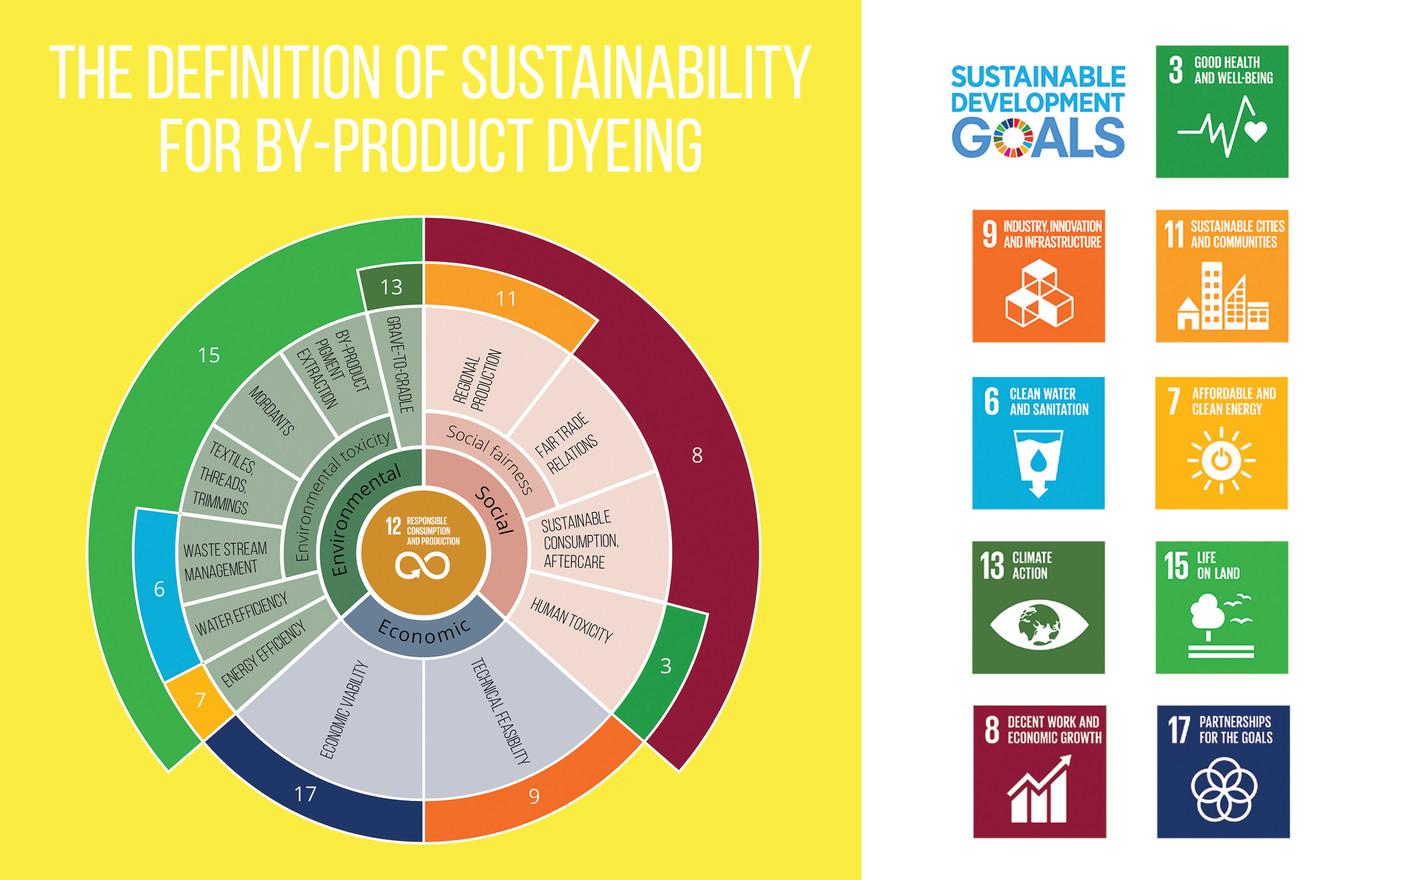 Sustainability within by-product dyeing